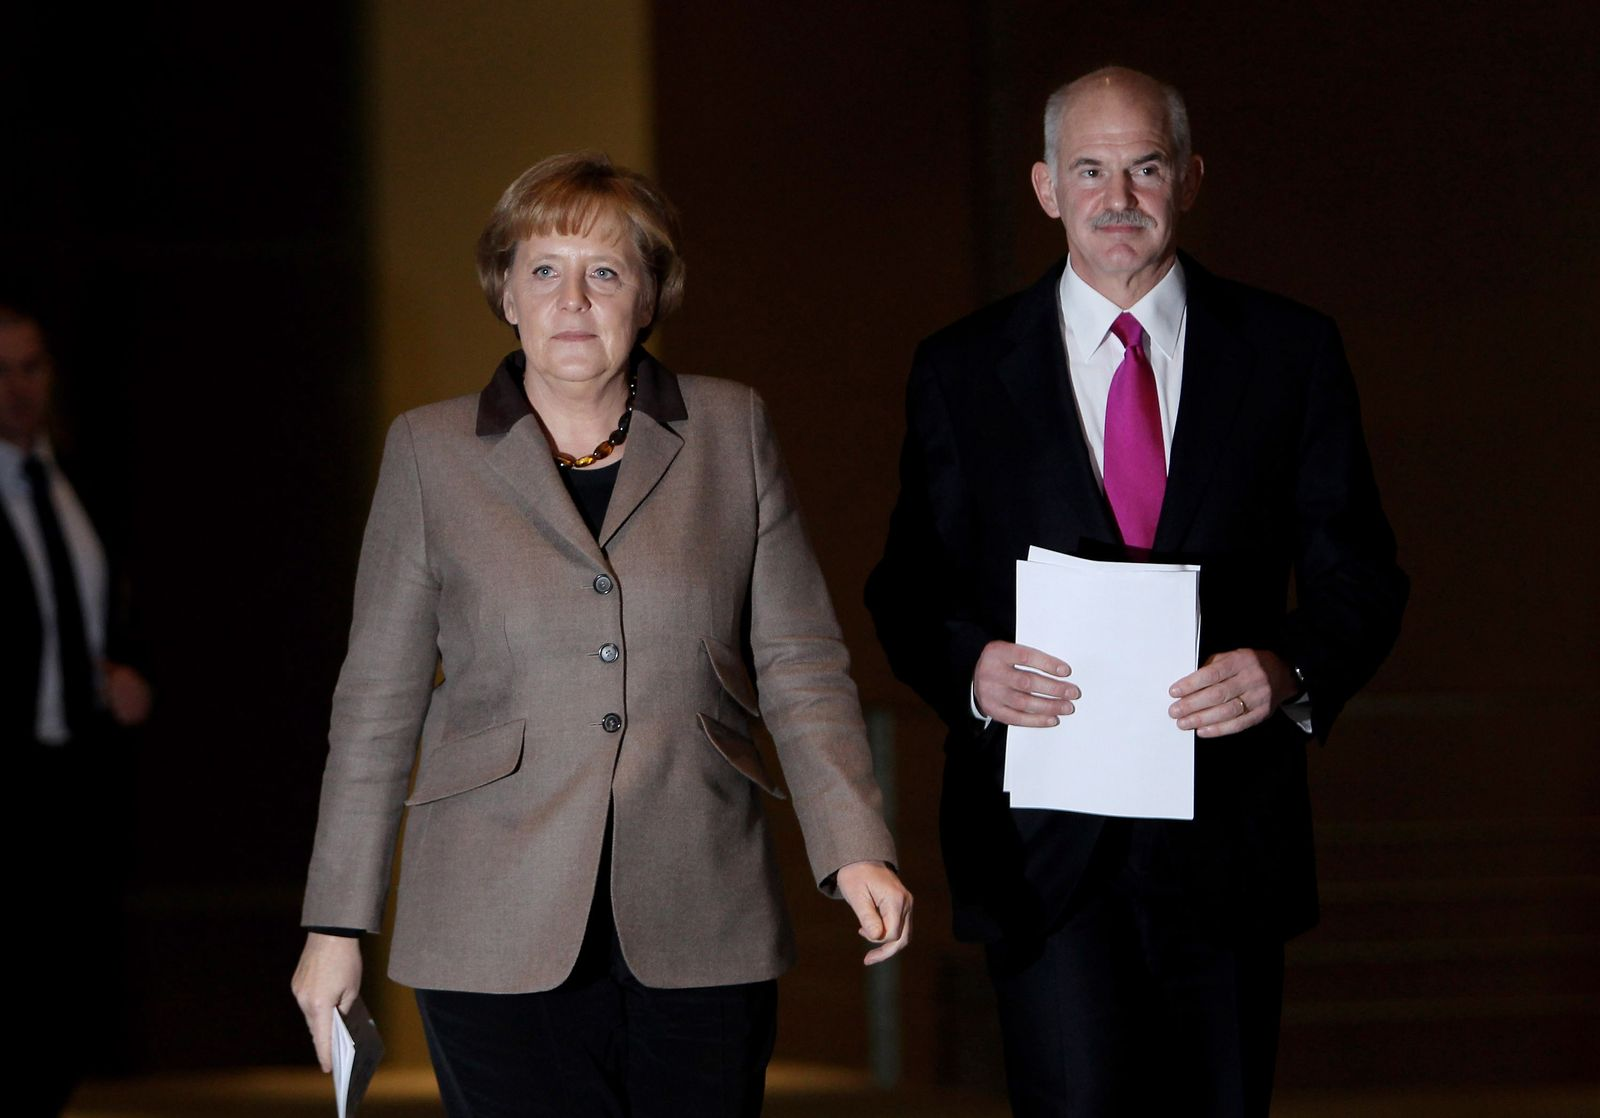 Merkel / Papandreou